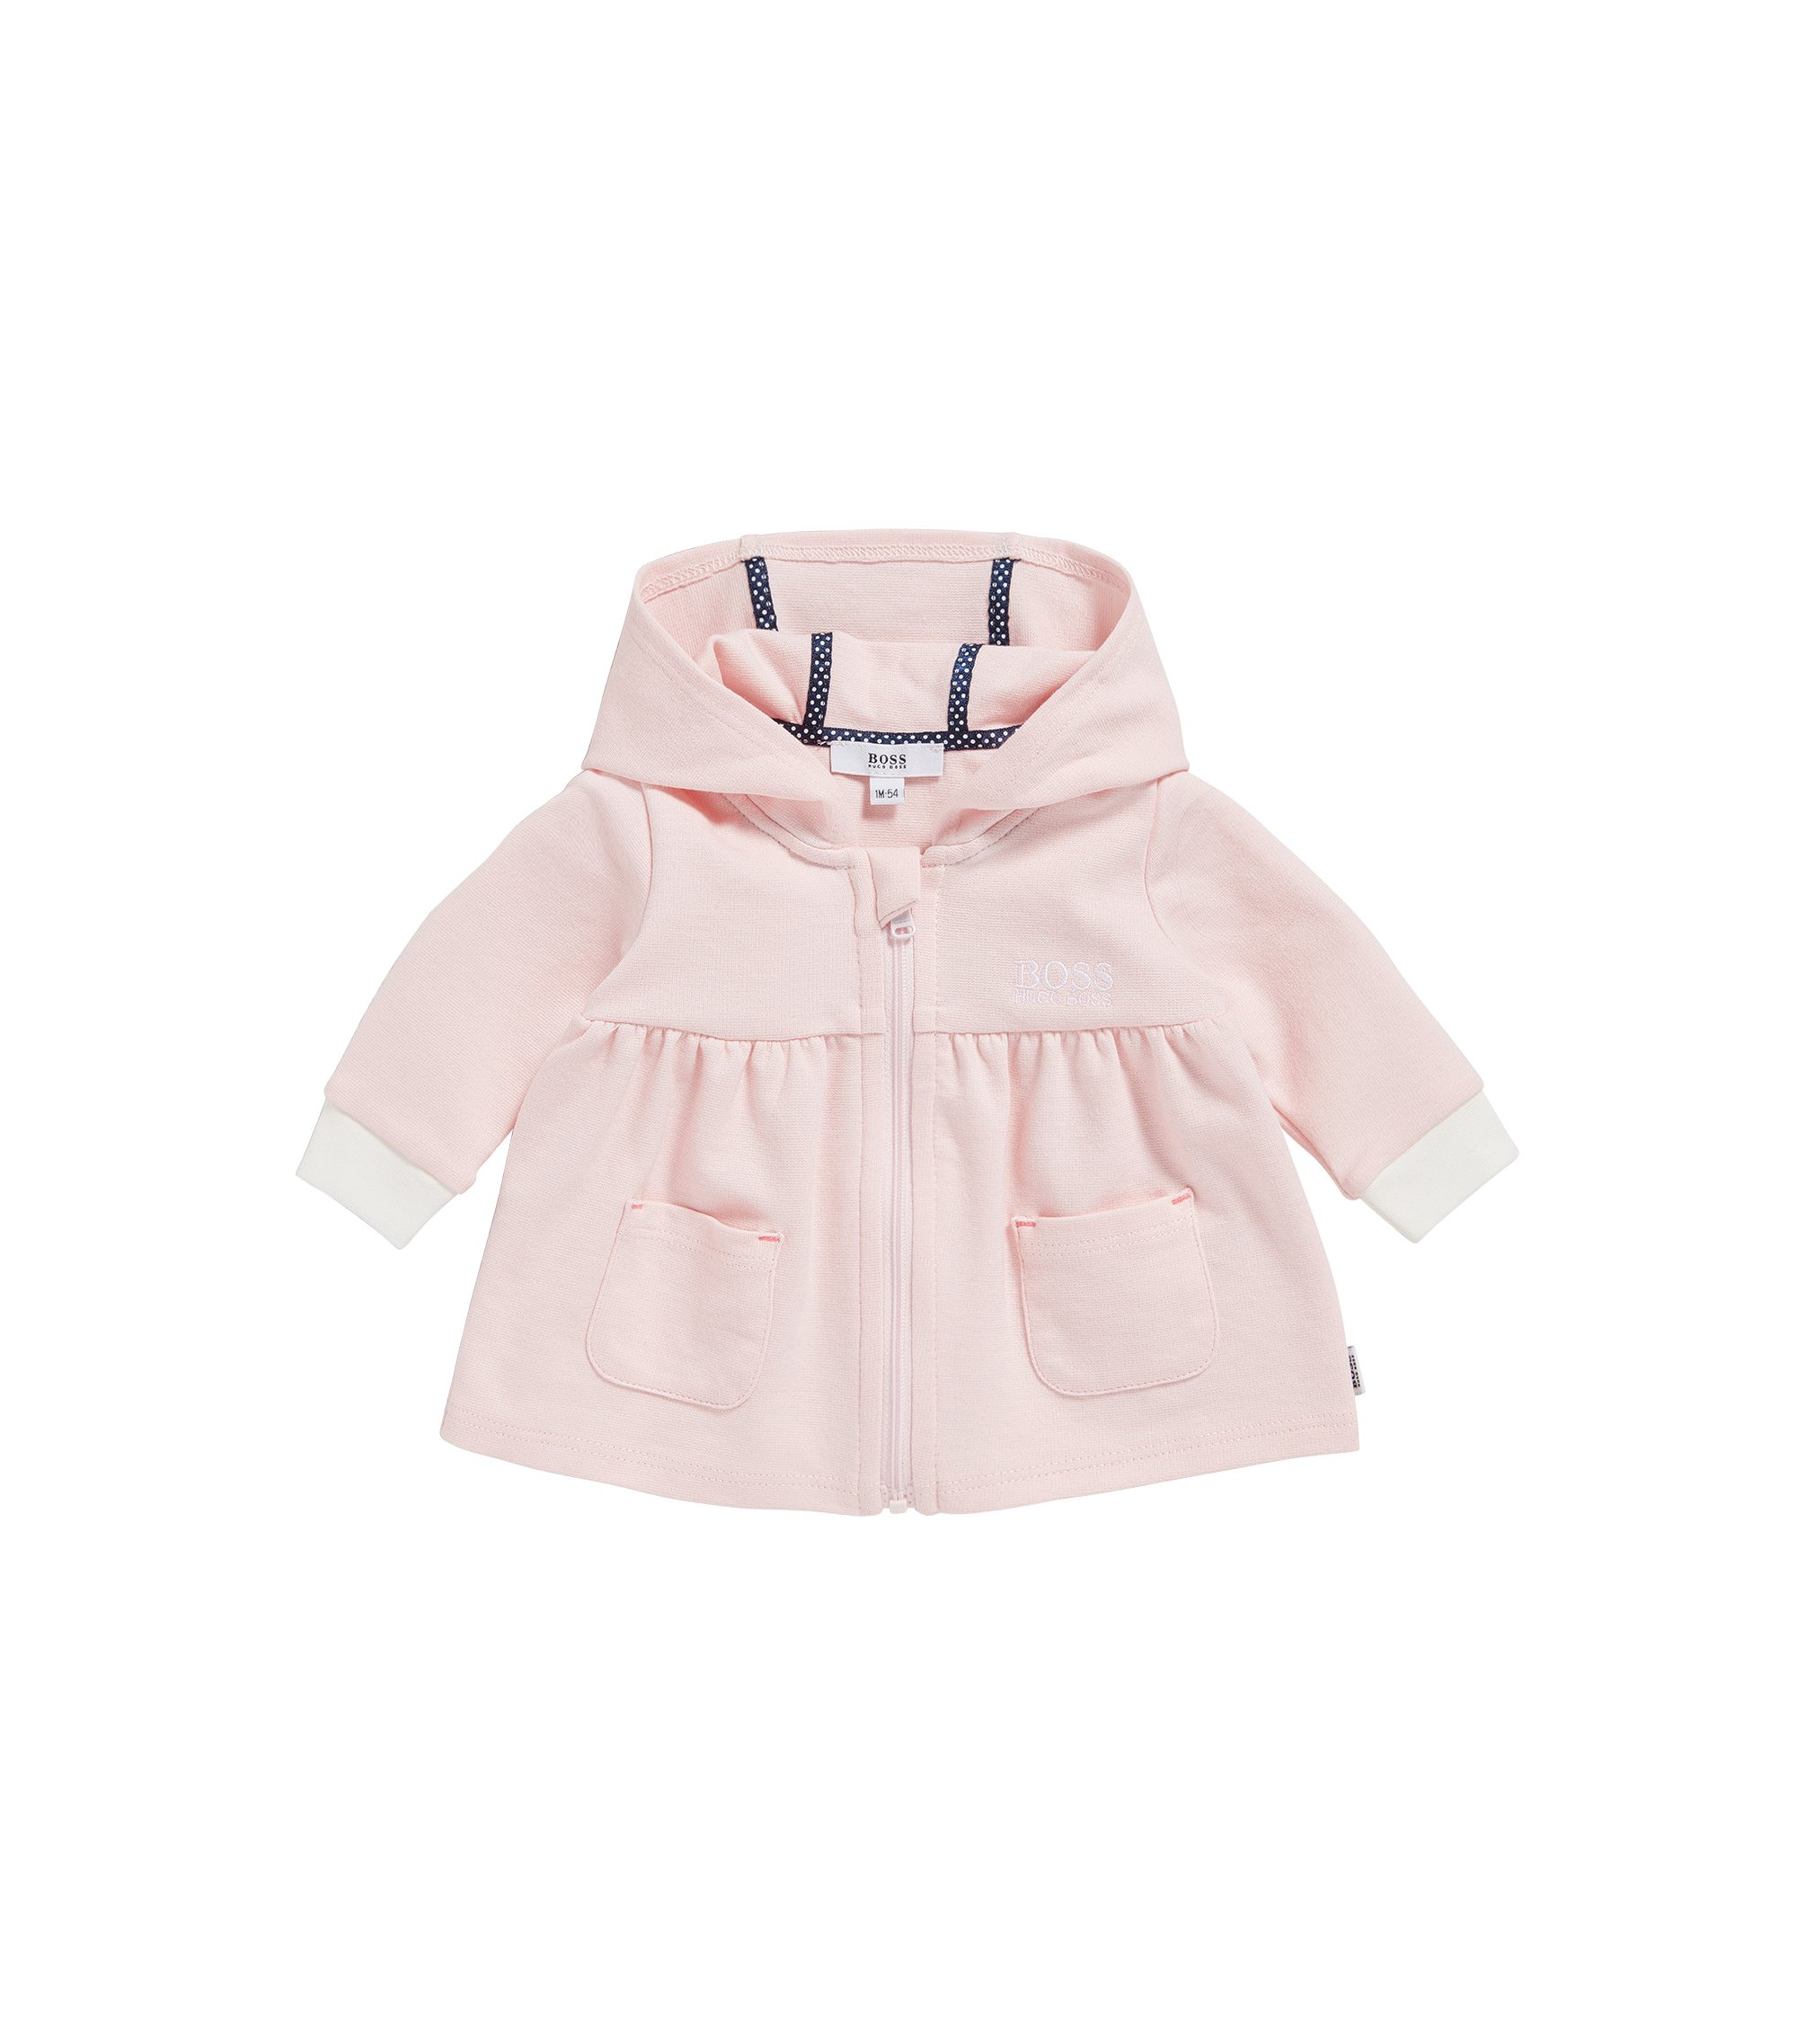 Newborn sweat jacket in stretch cotton blend with modal: 'J95205', light pink